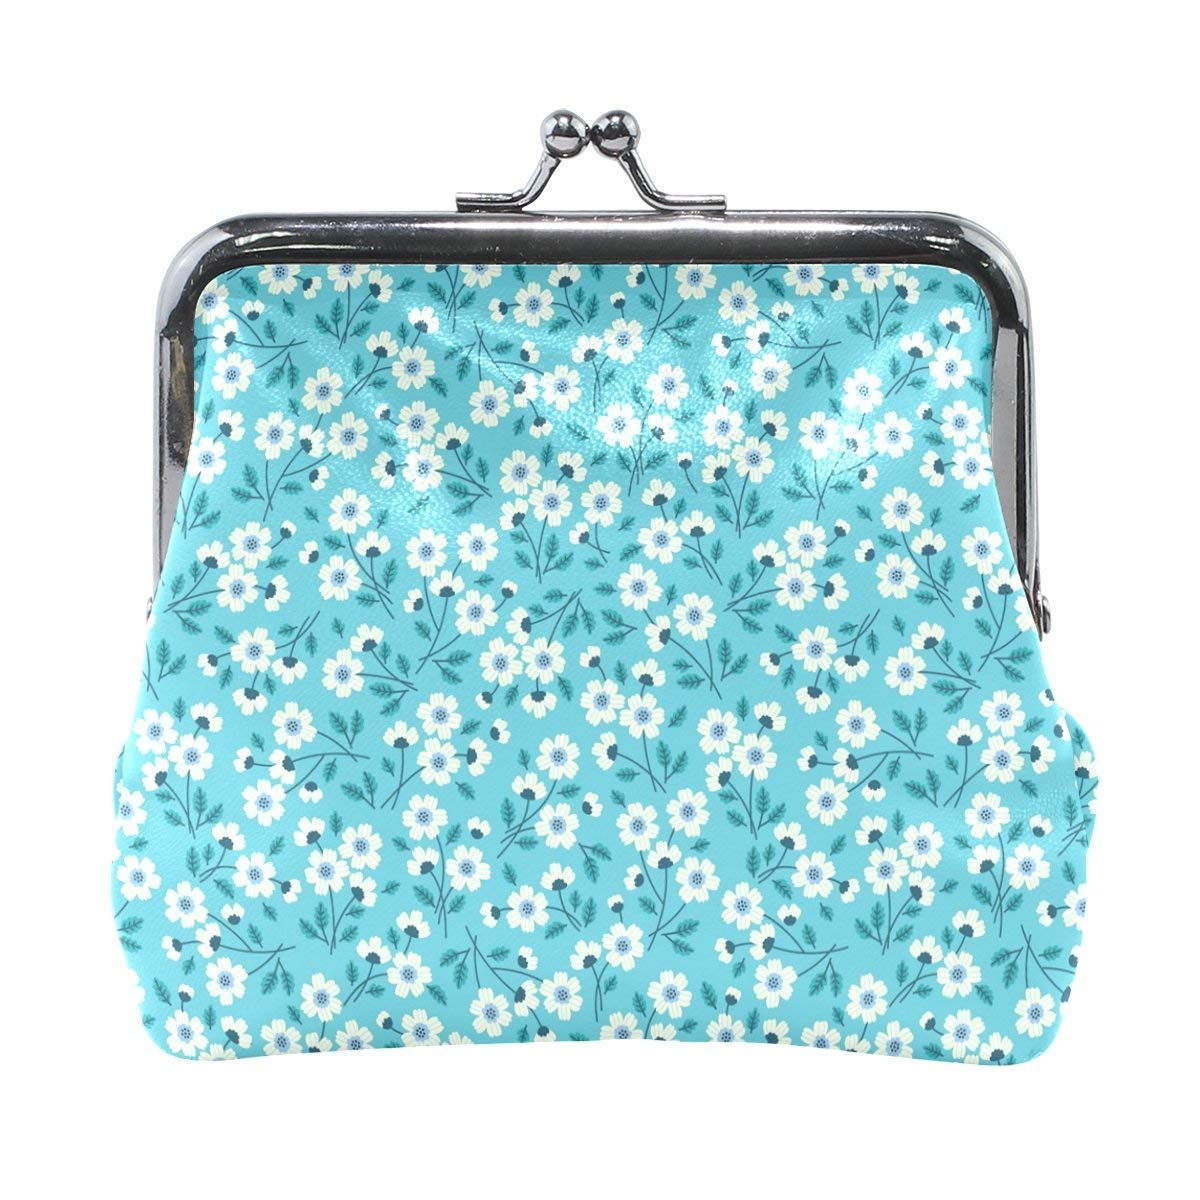 Cute Blue Floral Pattern High Grade Leather Coin Purse Snap Closure Clutch Coin Wallet